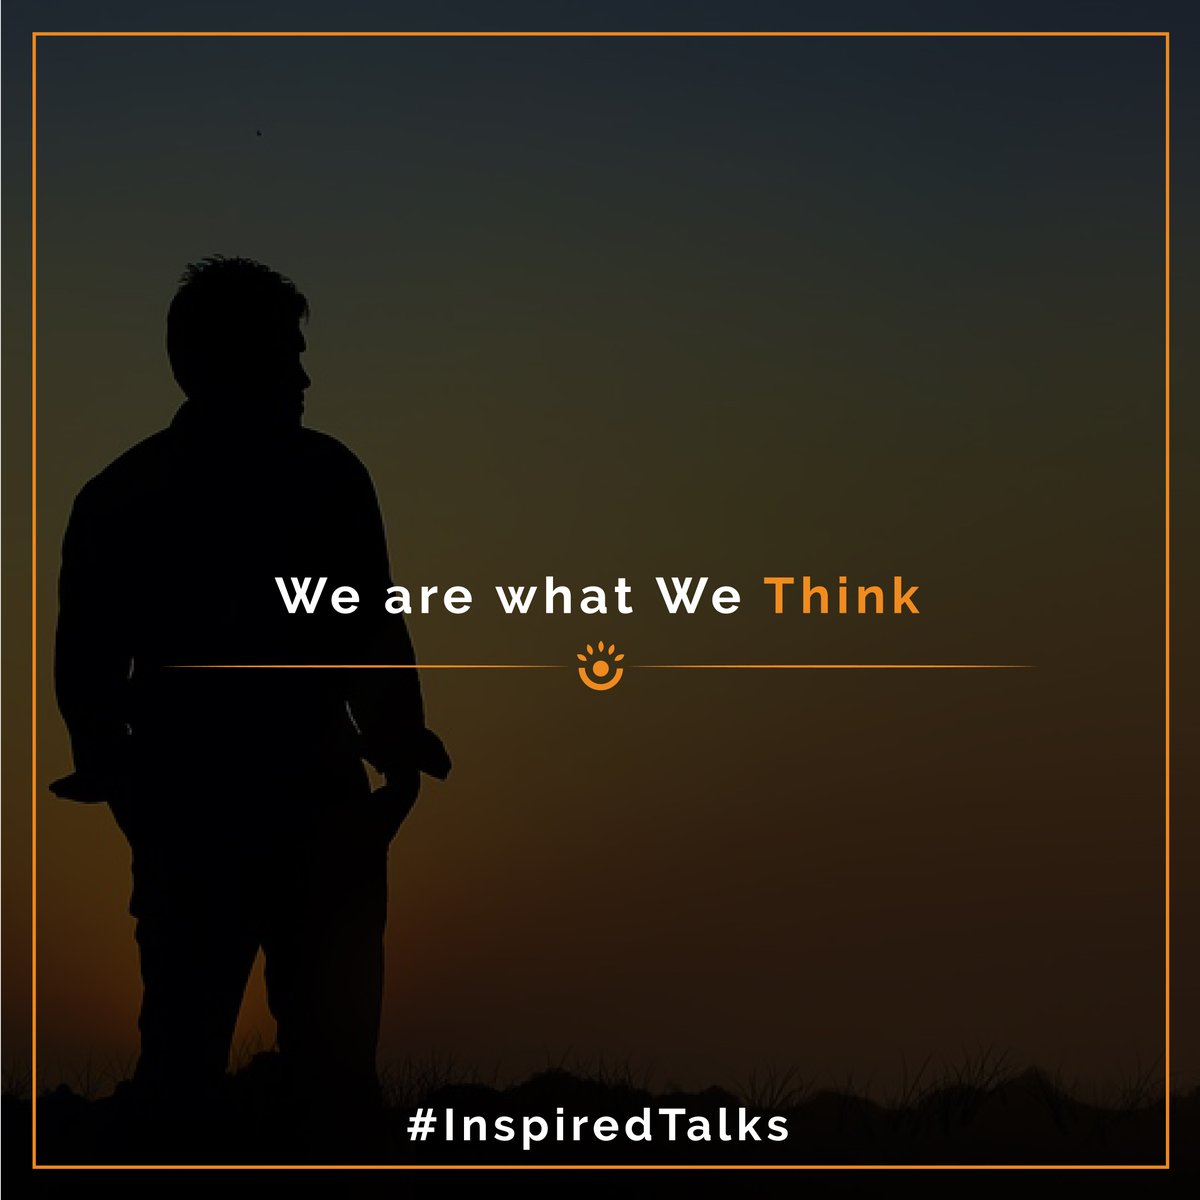 We are what we think! Follow us for your #dailymotivation..#inspiredtalk #success #dream #achievers #life #inspiration #work #words #win #confident #hardwork #business #entrepreneur